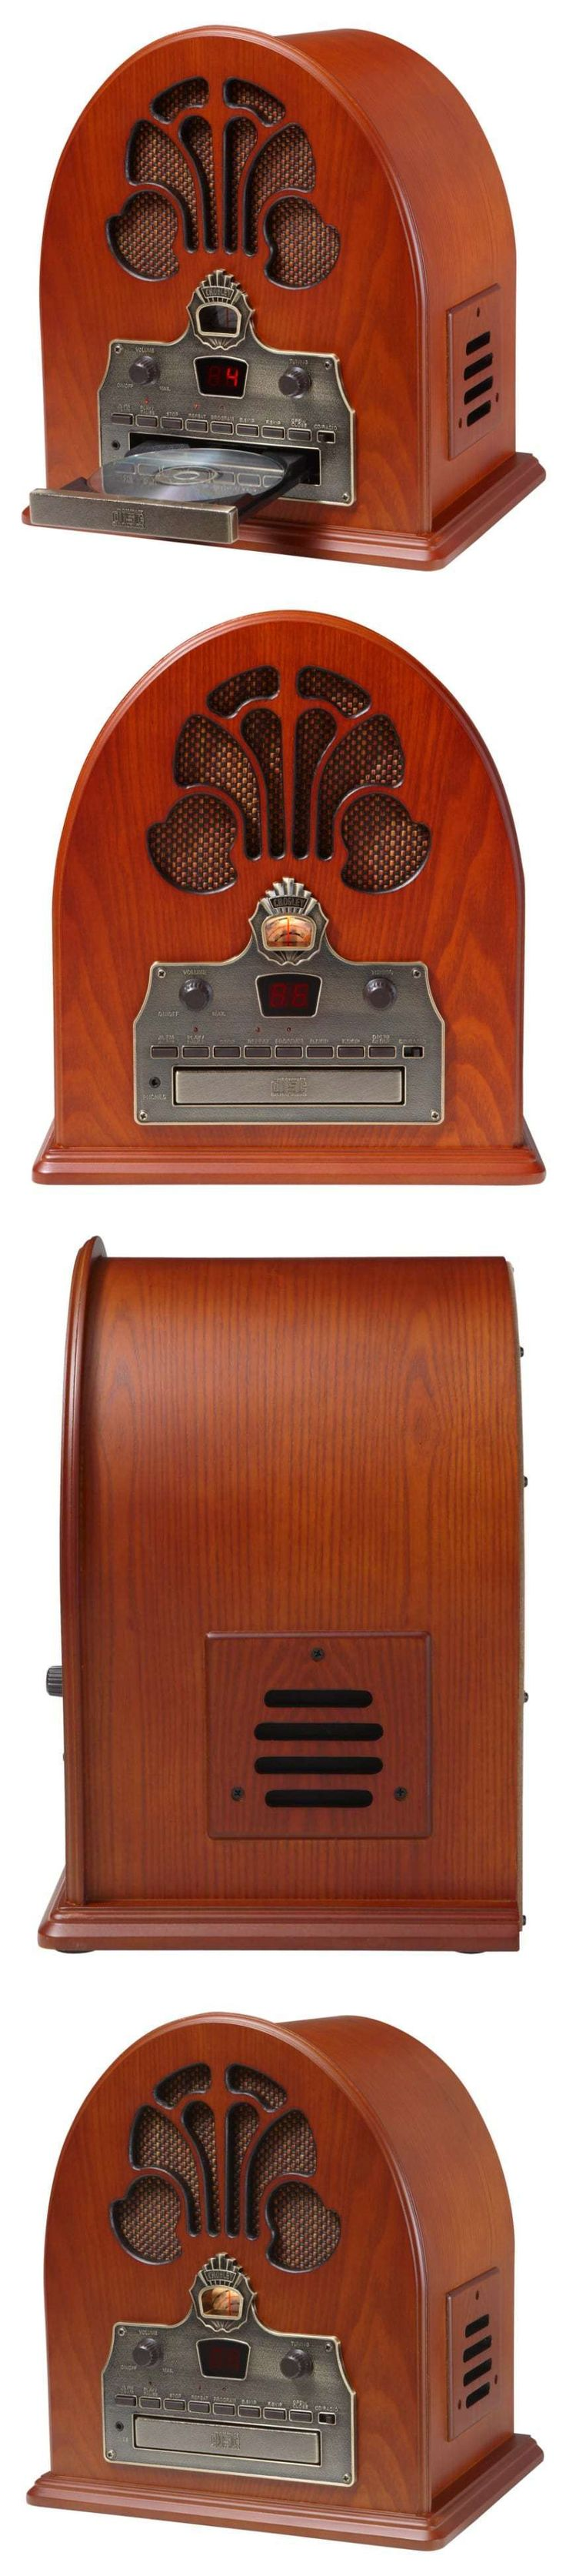 Radio Tuners: Retro Radio Fm/Am Cd Player Vintage 1930S Style Full-Range Stereo Analog Tuner BUY IT NOW ONLY: $119.25